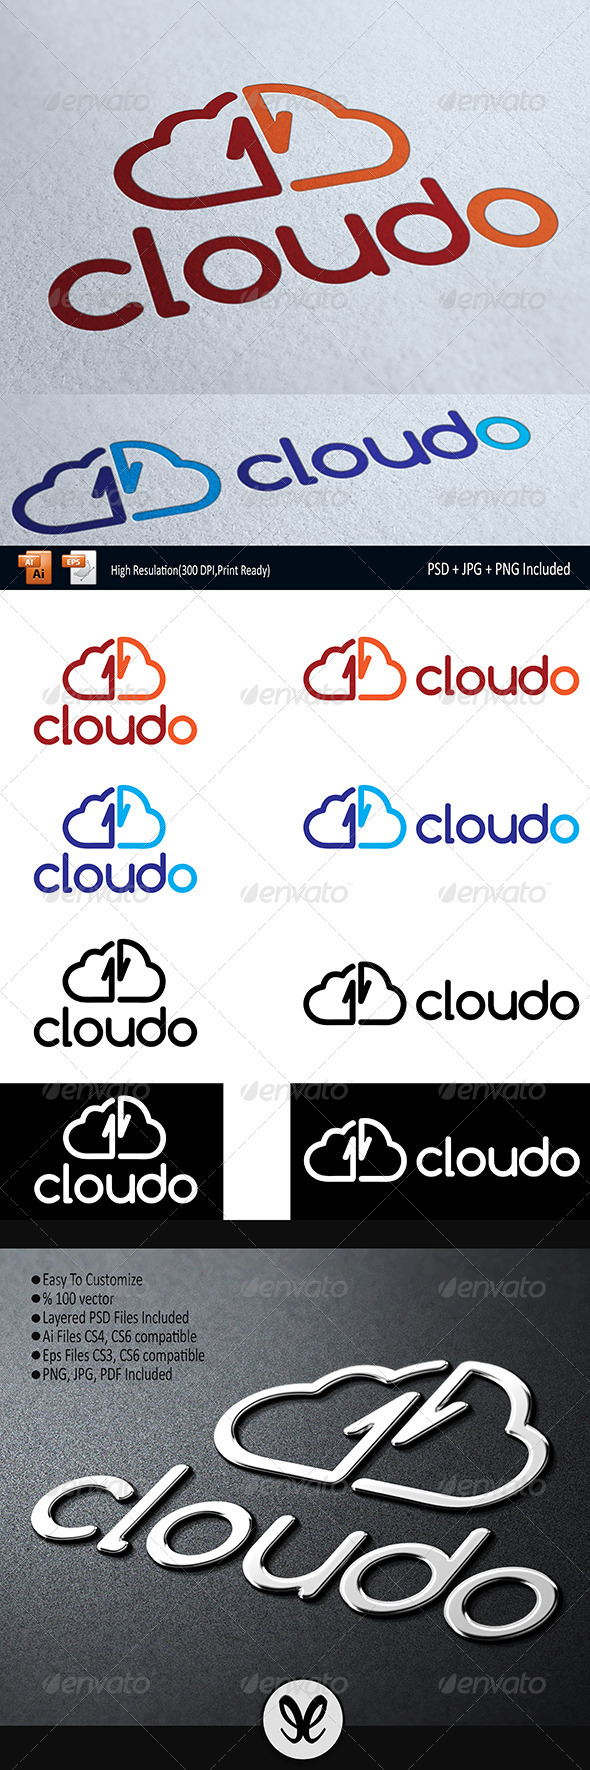 Cloud Storage - Cloudoo Logo Temlate - Logo Templates